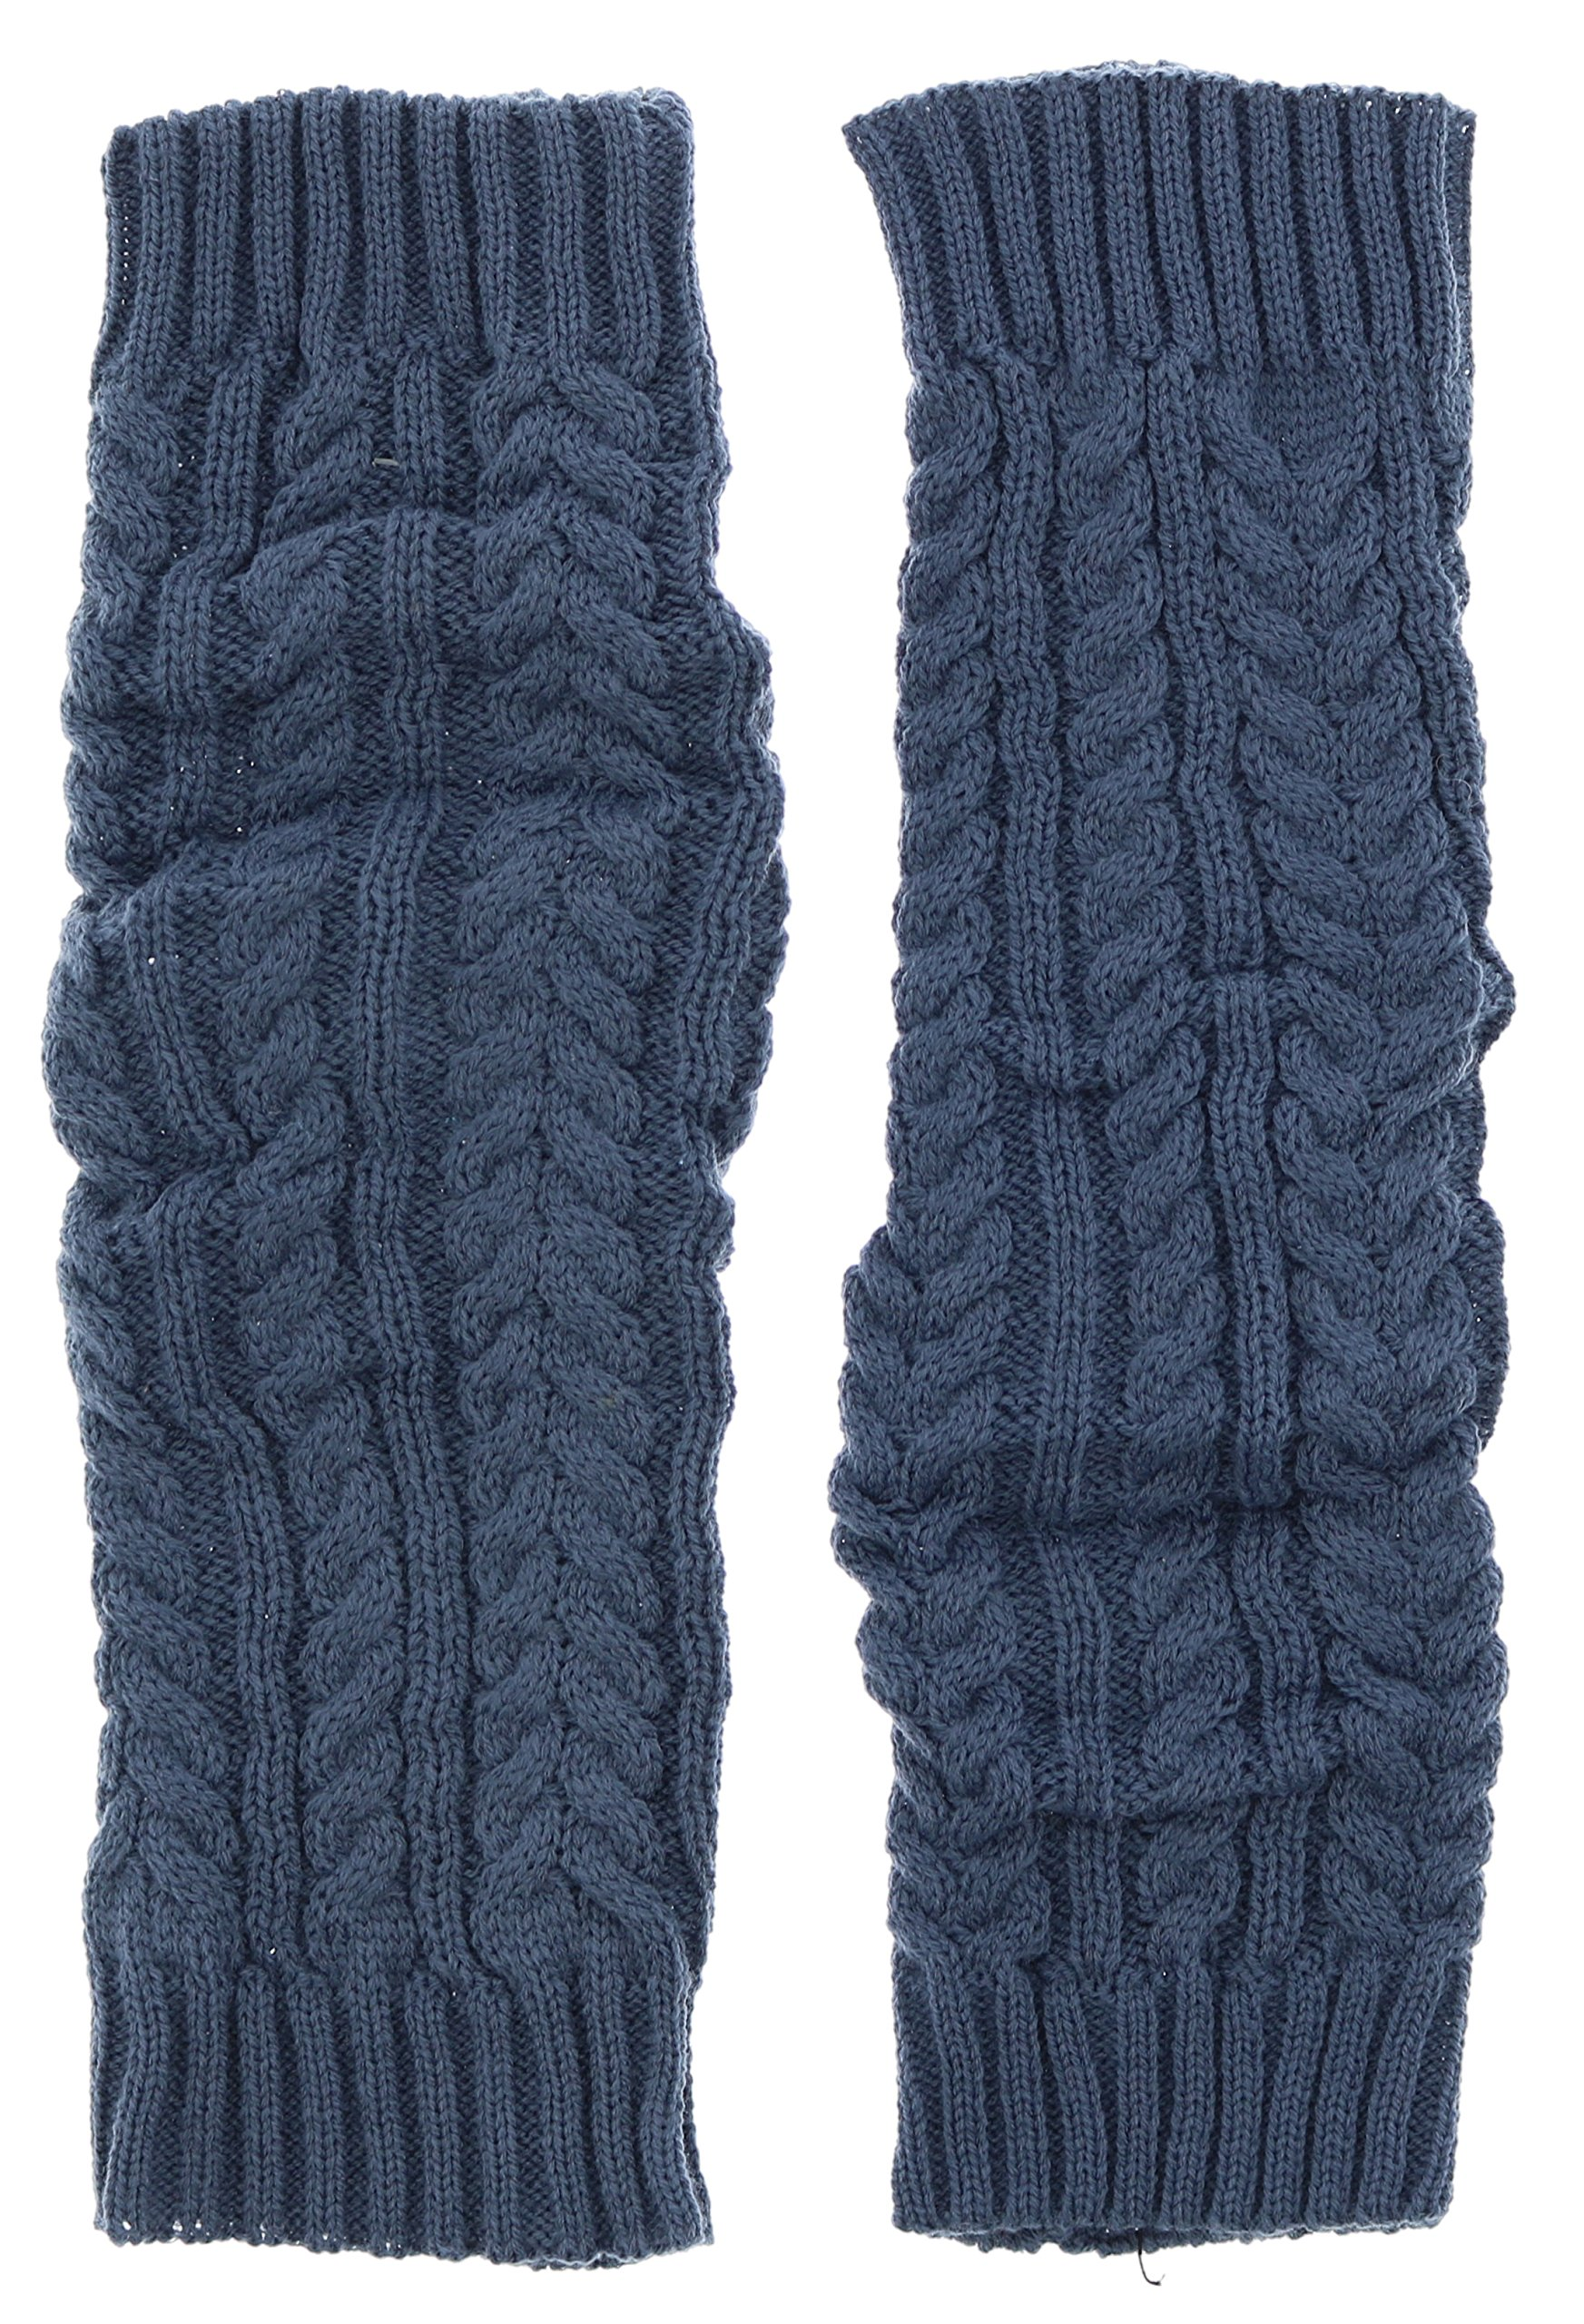 Violet & Virtue Women's Classic Cable Knit Ribbed Cuff Leg Warmers (Blue)